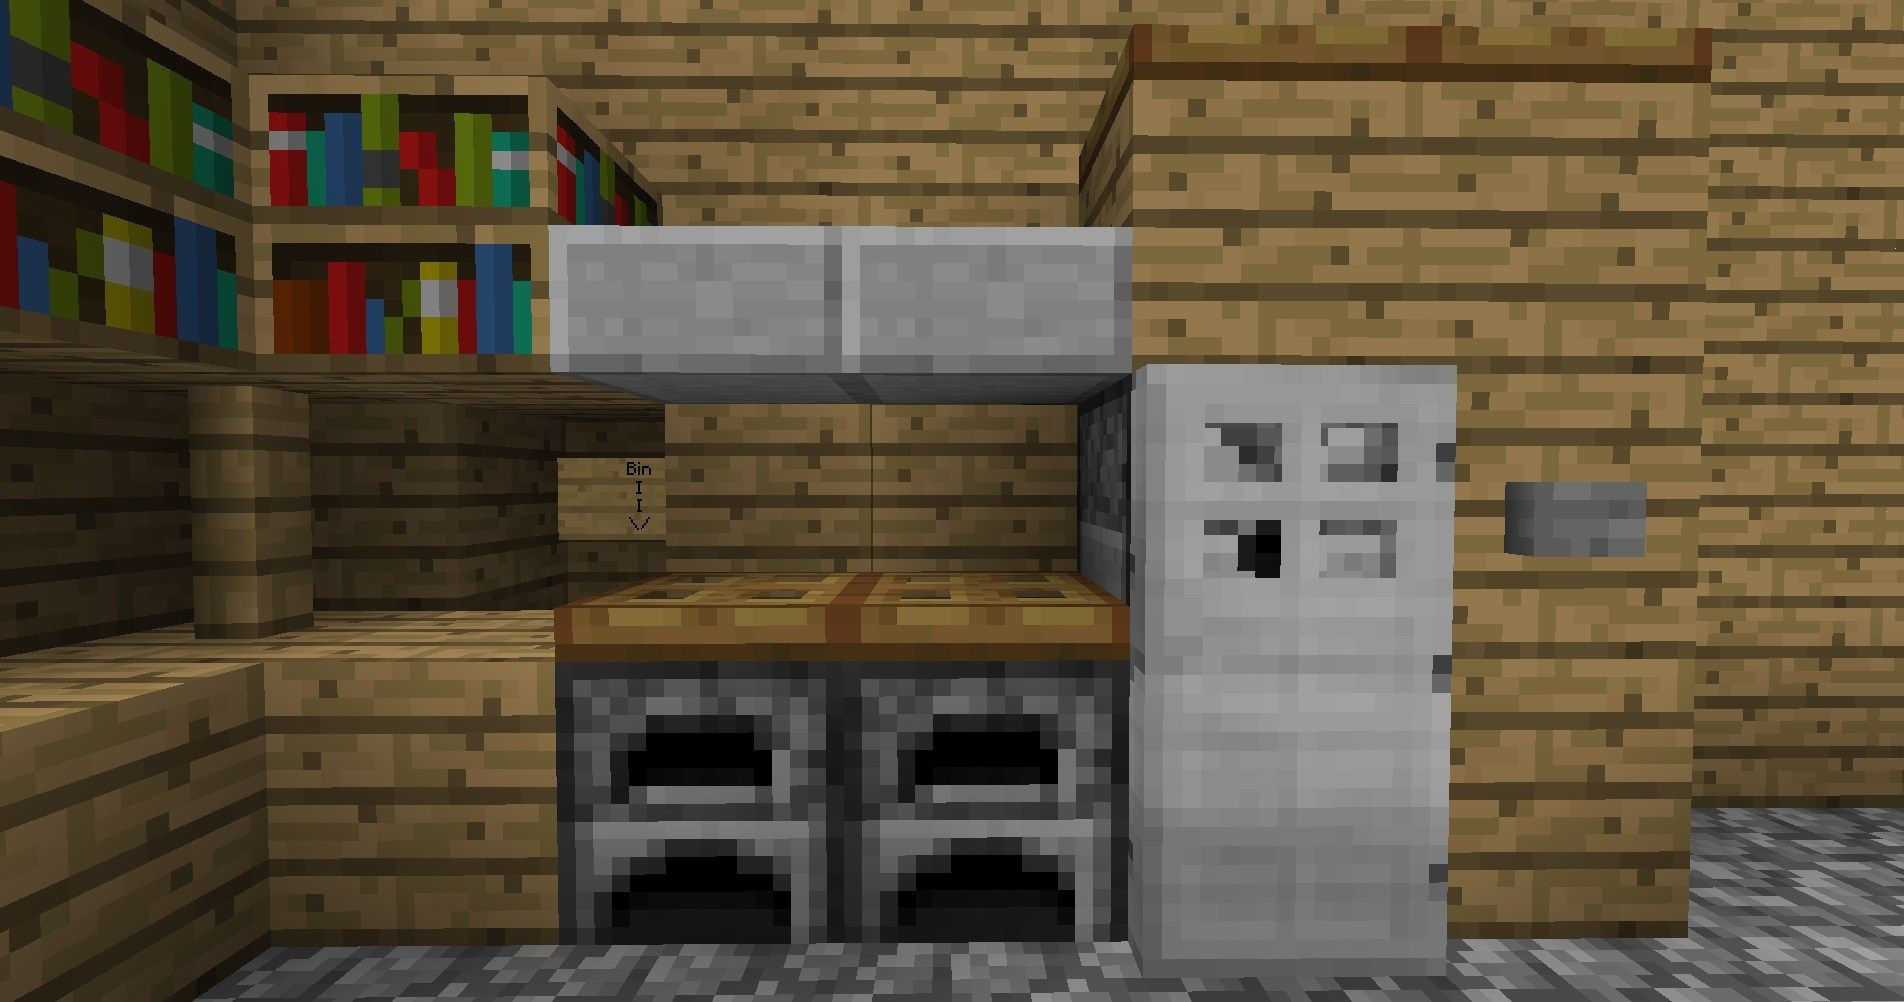 How To Lose Cash With Minecraft Kitchen Area Concepts No Mods